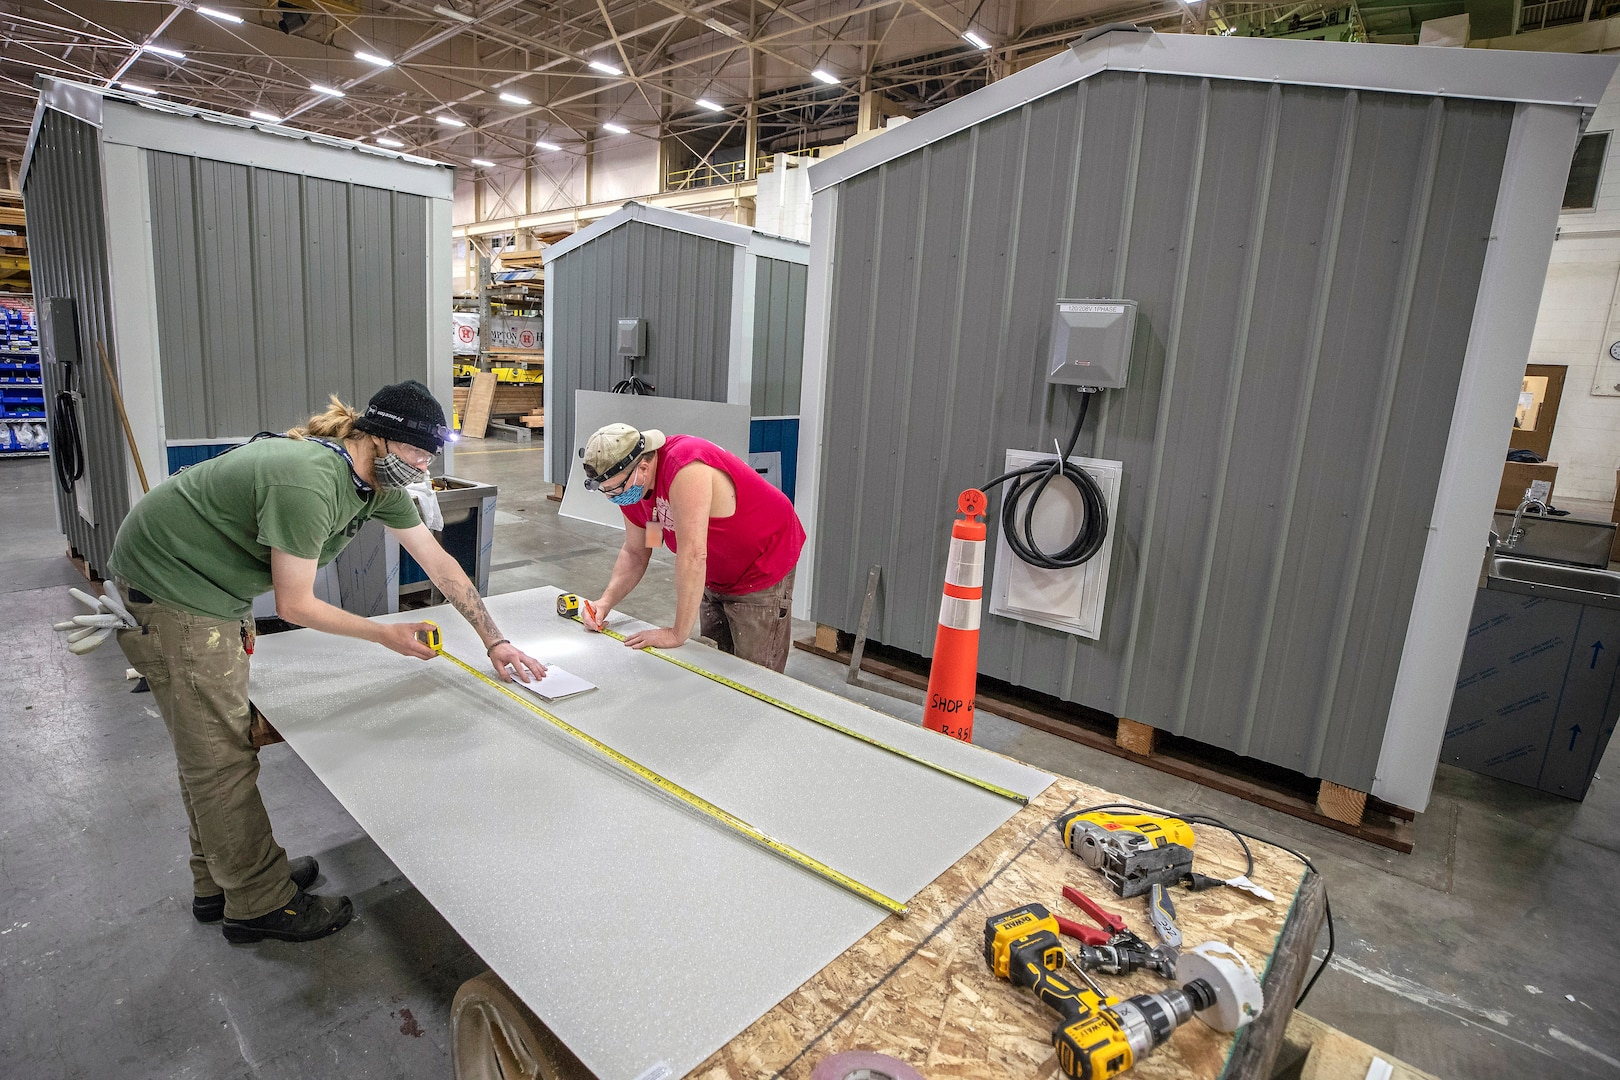 Peyton Gingrey, left, and James Zeitler, both composite plastic fabricators with Shop 64, assemble new hand washing stations May 19, 2020 inside Shop 64 Woodcrafters at Puget Sound Naval Shipyard & Intermediate Maintenance Facility in Bremerton, Washington.